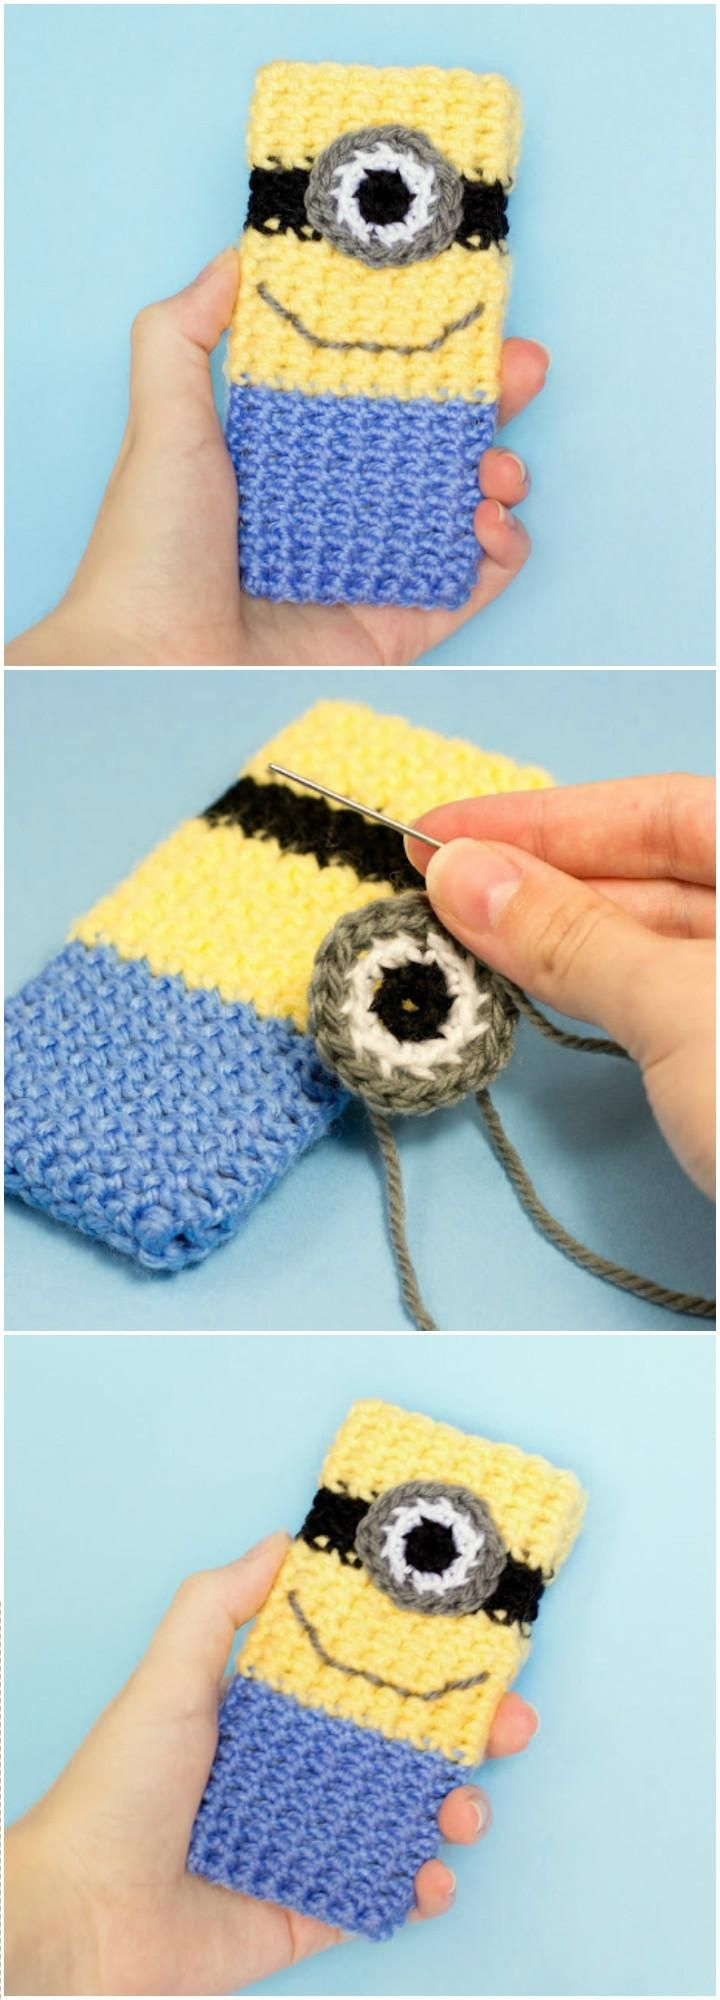 Minion Inspired Crochet Phone Case - 50 Free Crochet Phone Case Patterns - DIY & Crafts